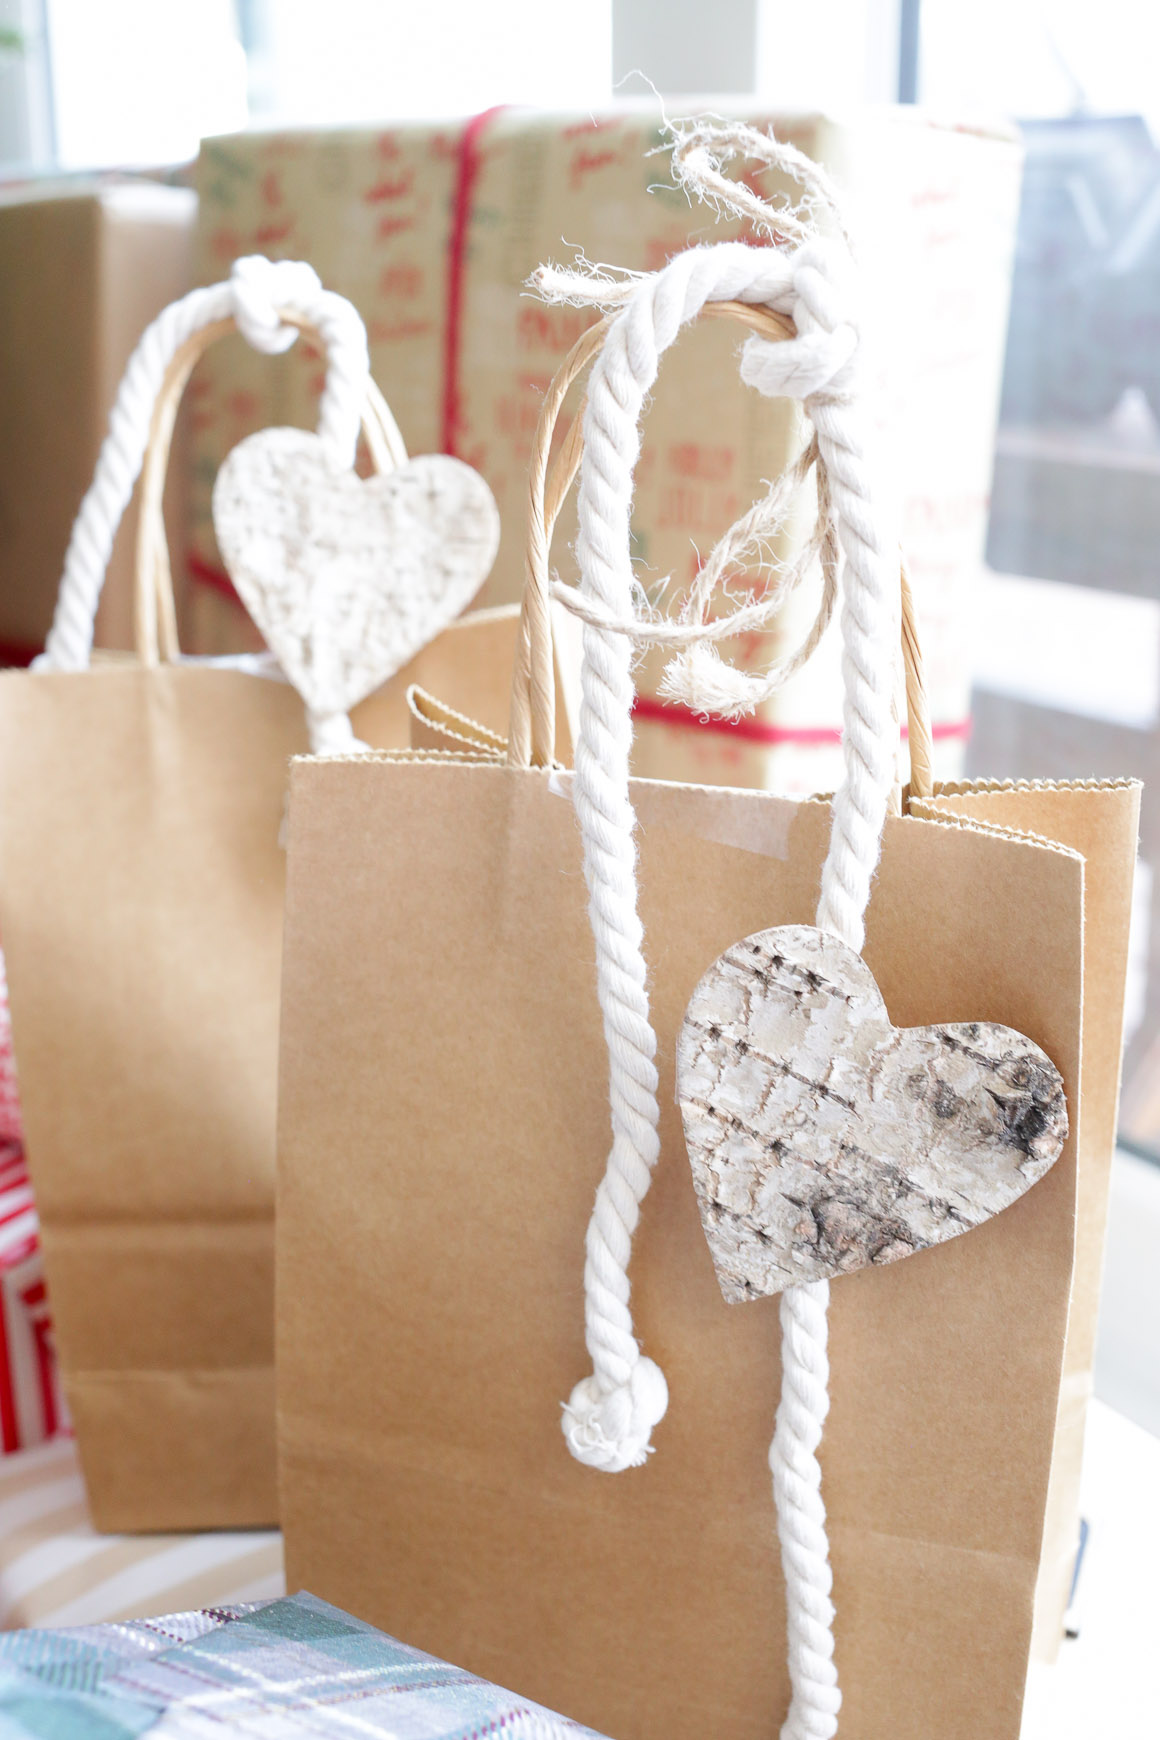 Gift Wrap Made Simple with a few natural elements | This Mamas Dance